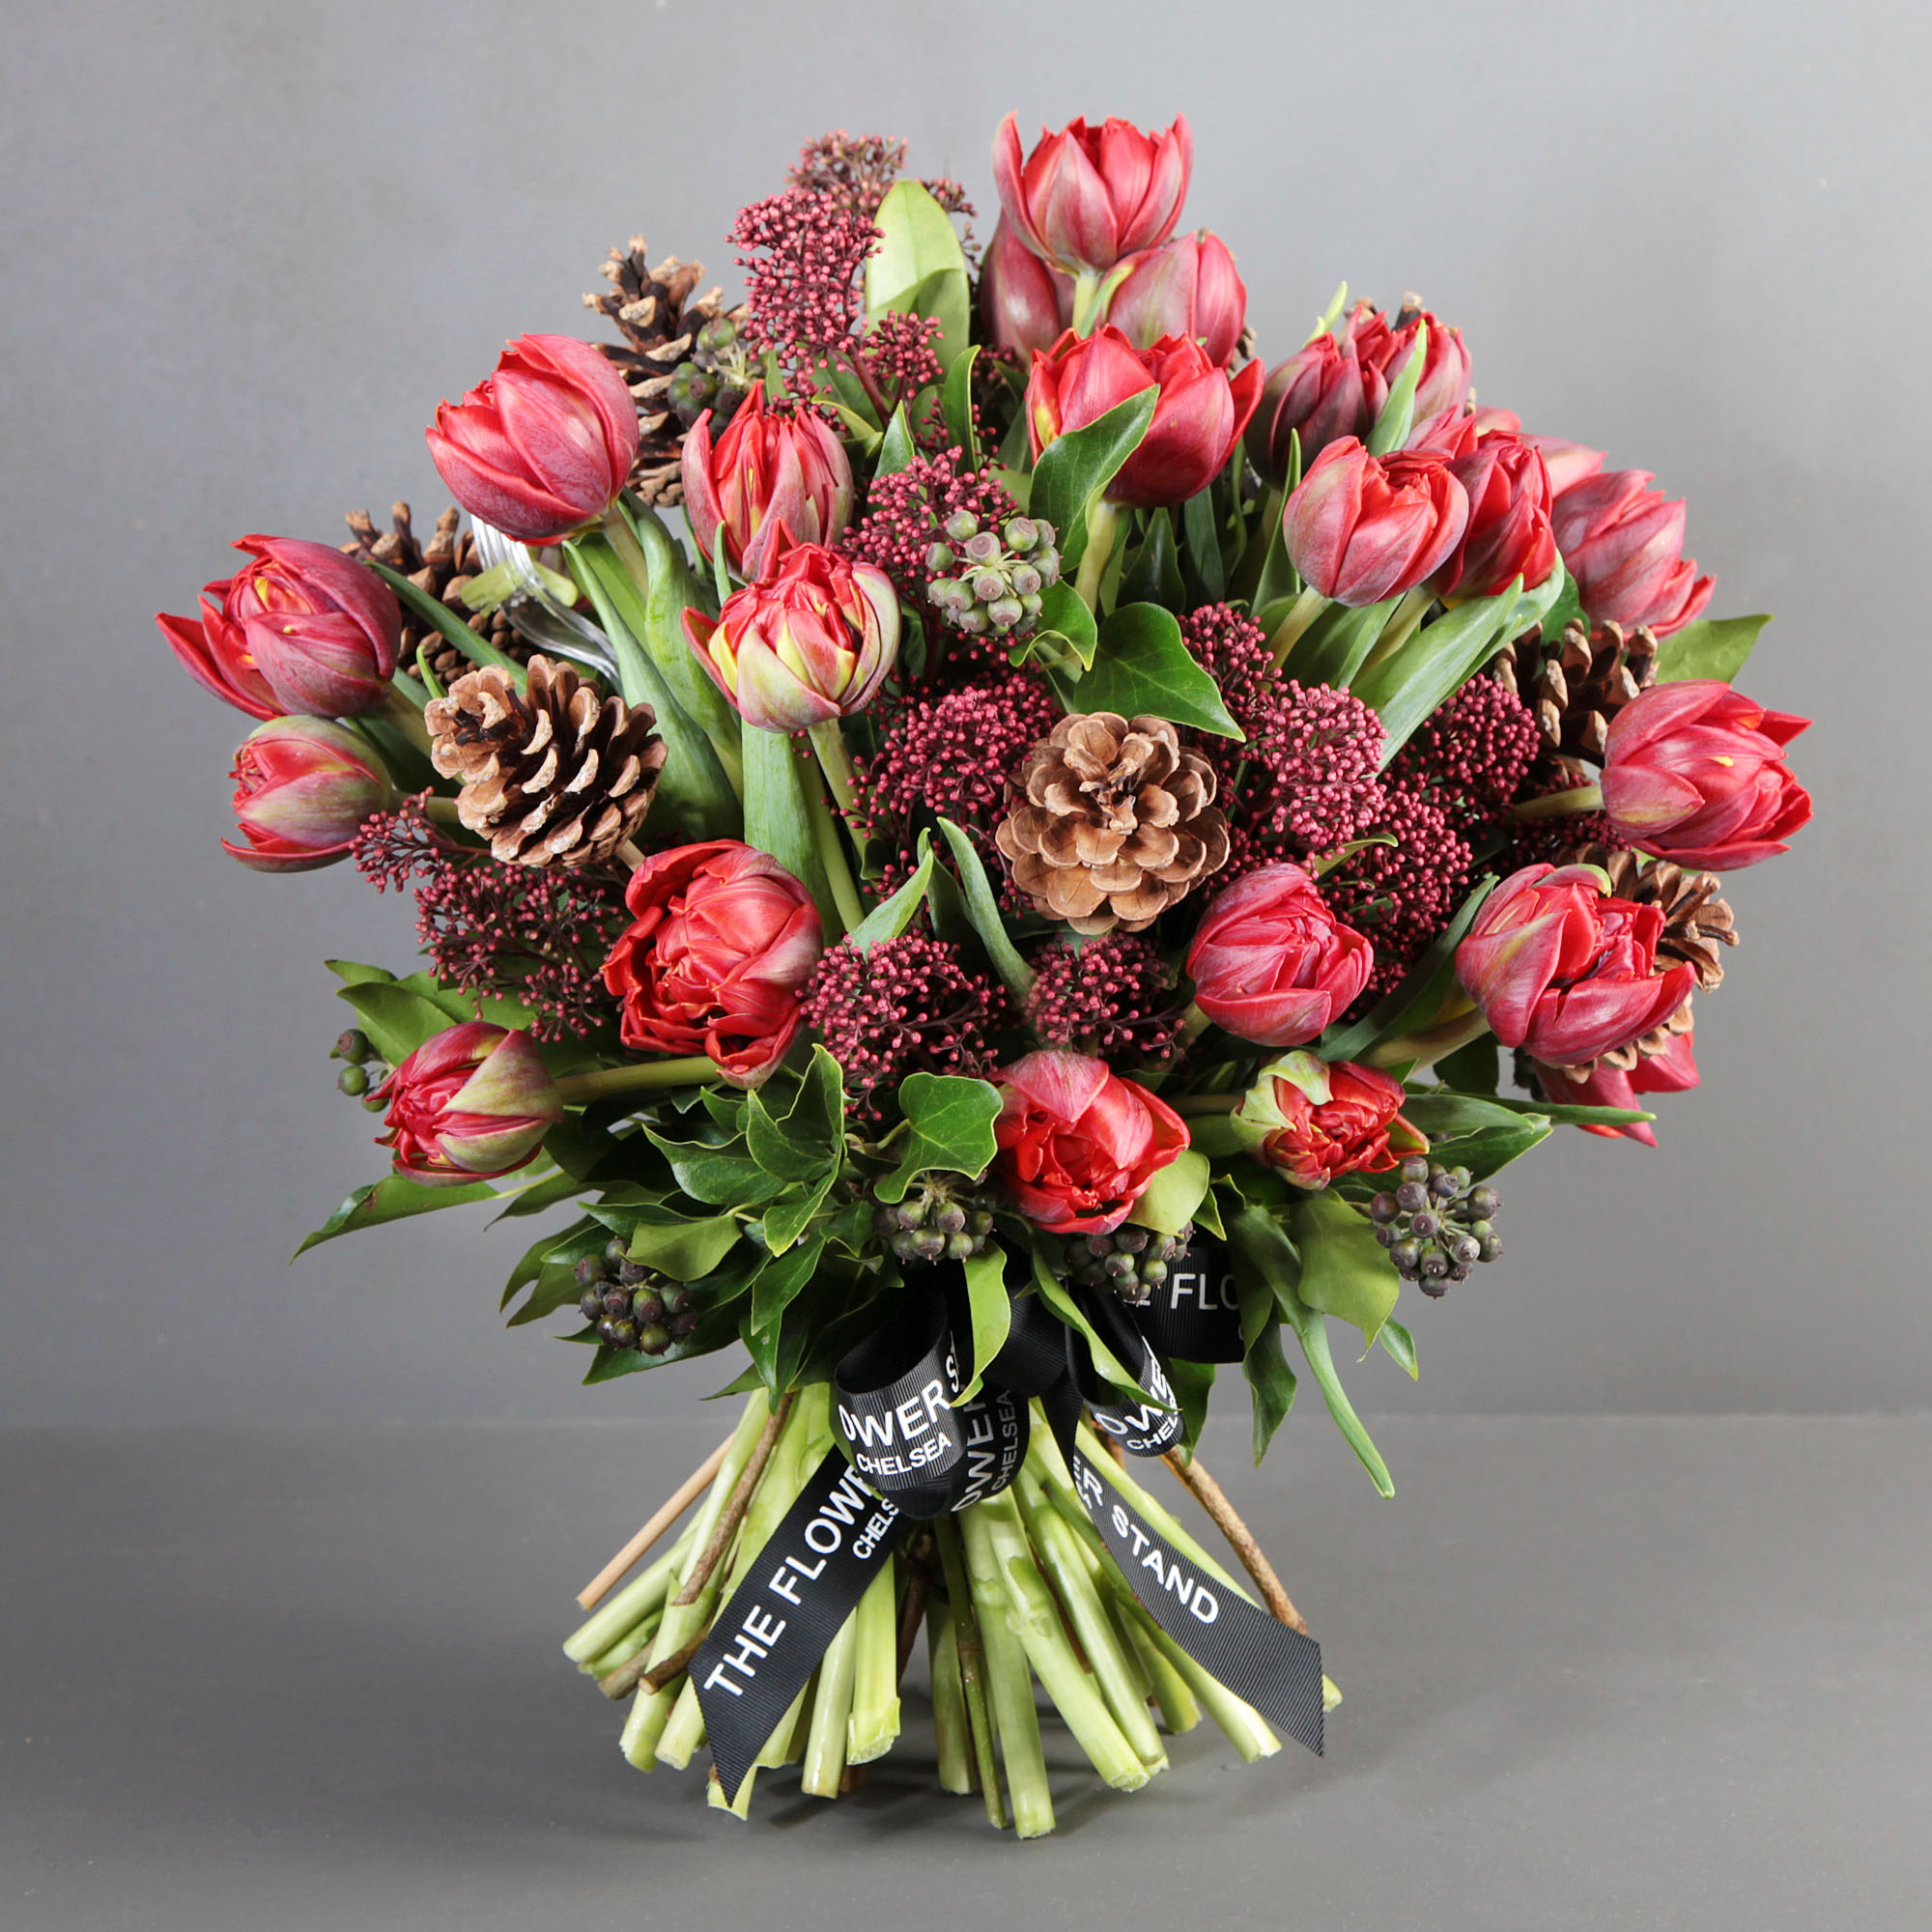 Christmas Flowers London, Luxury Flowers for Christmas, Same Day